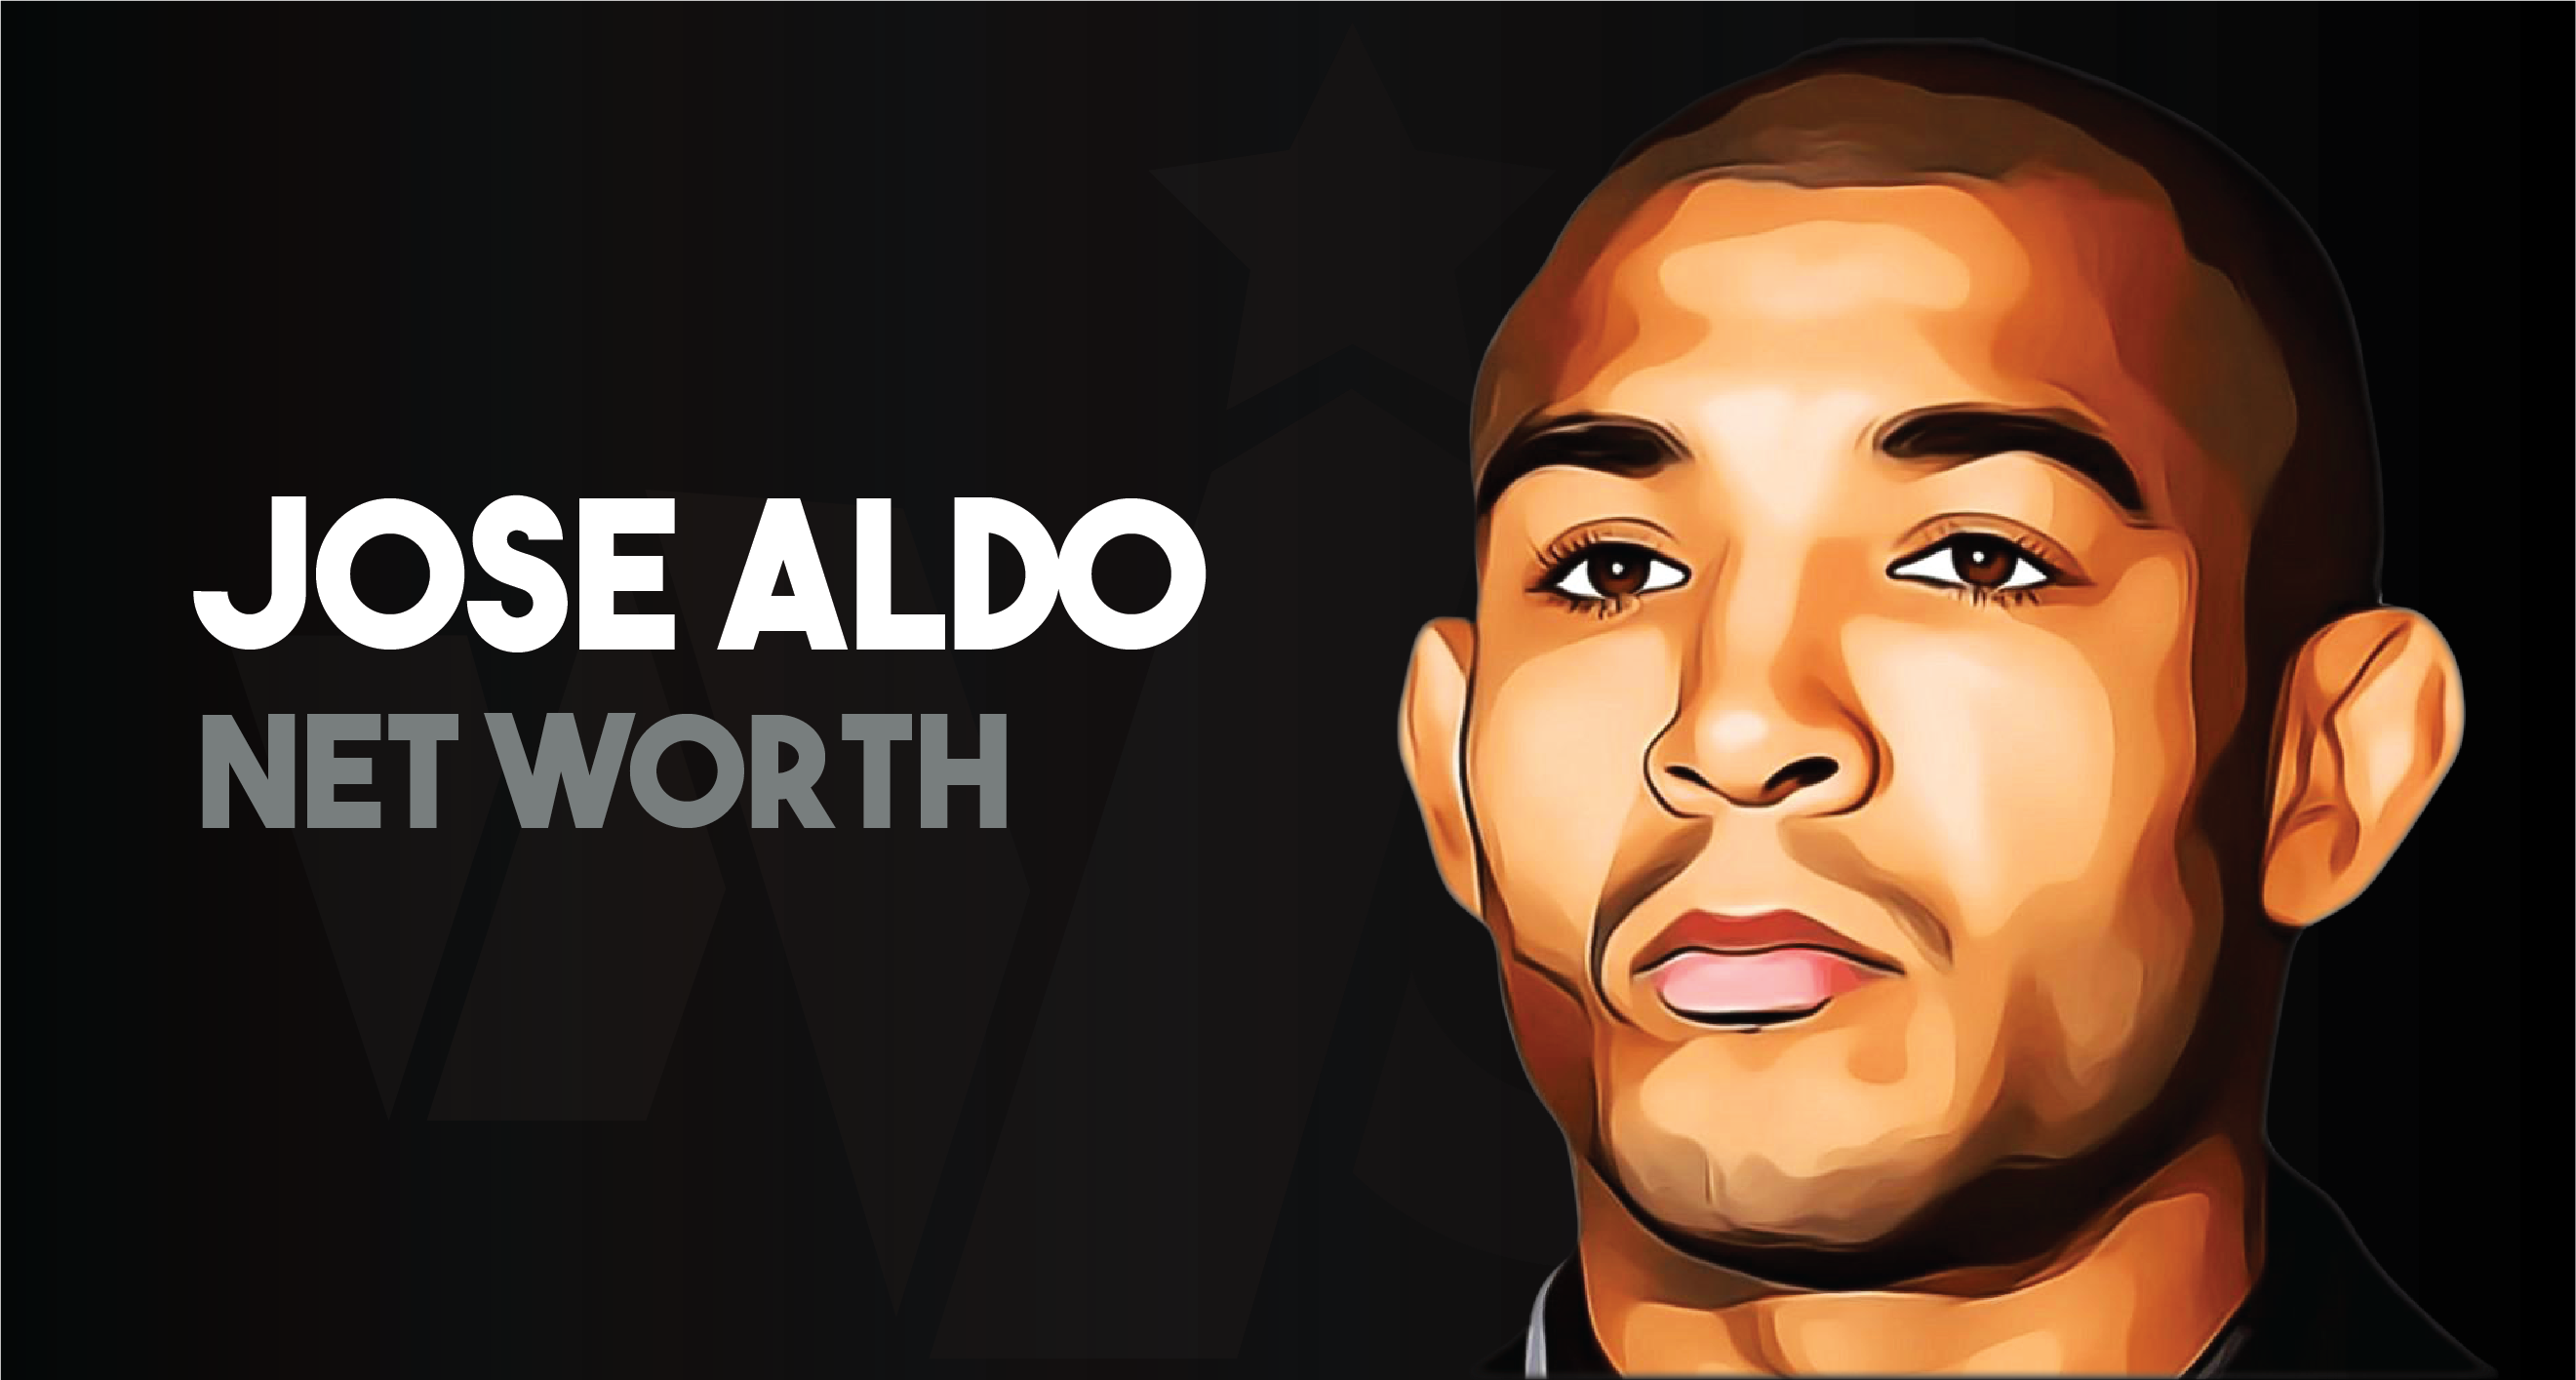 Jose Aldo_Net Worth